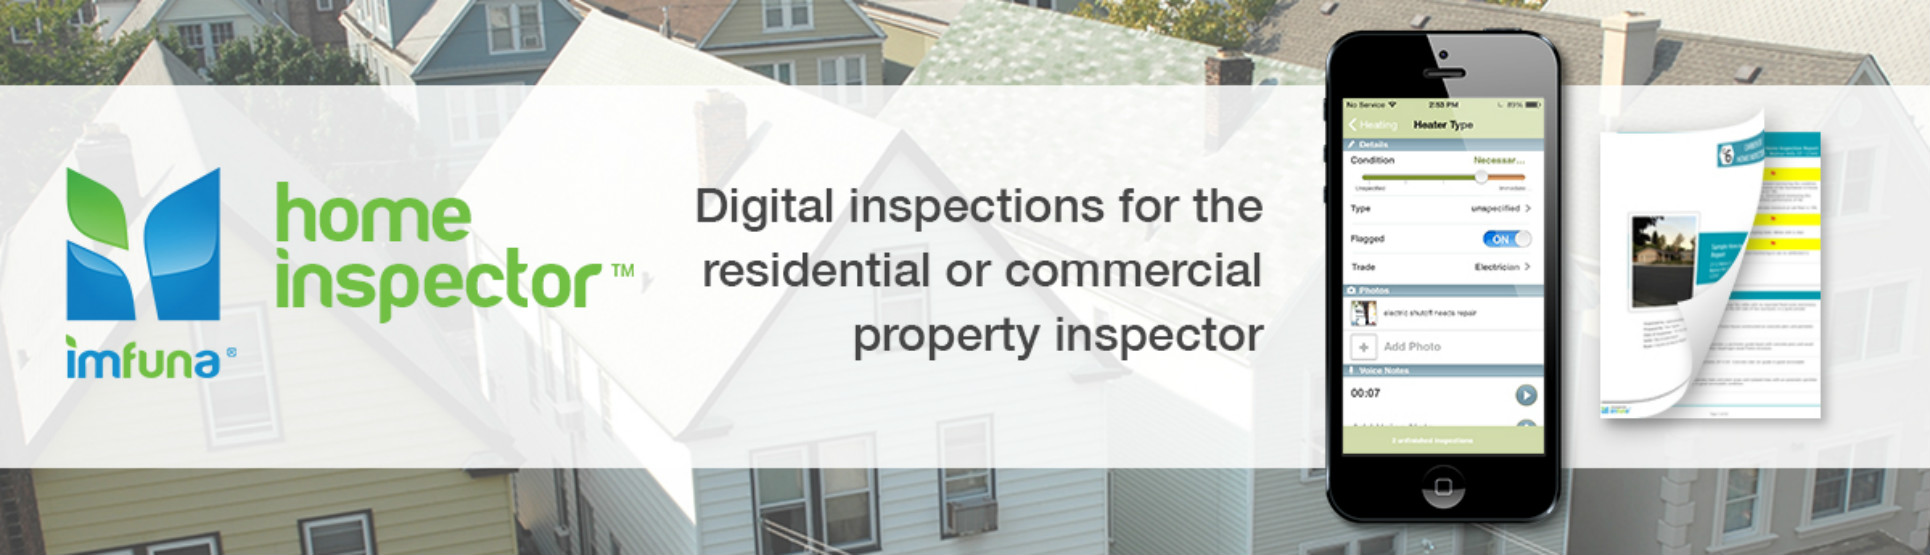 Imfuna Home Inspector is mobile home inspection software for digital property management